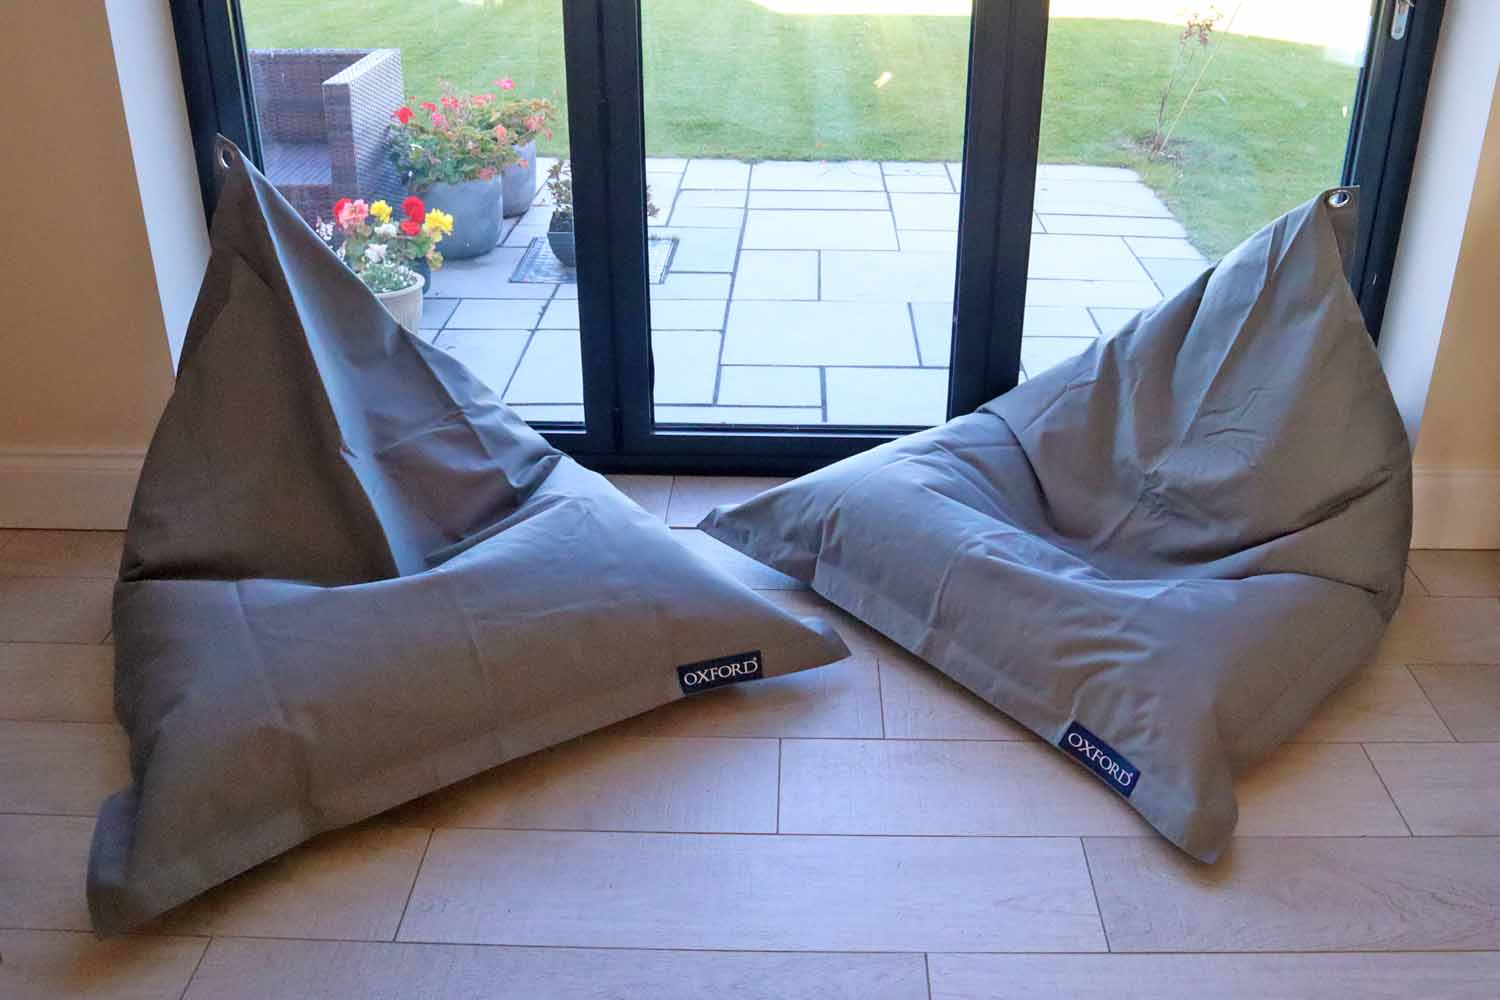 Conservatory bean bags indoor beanbag furniture stylish